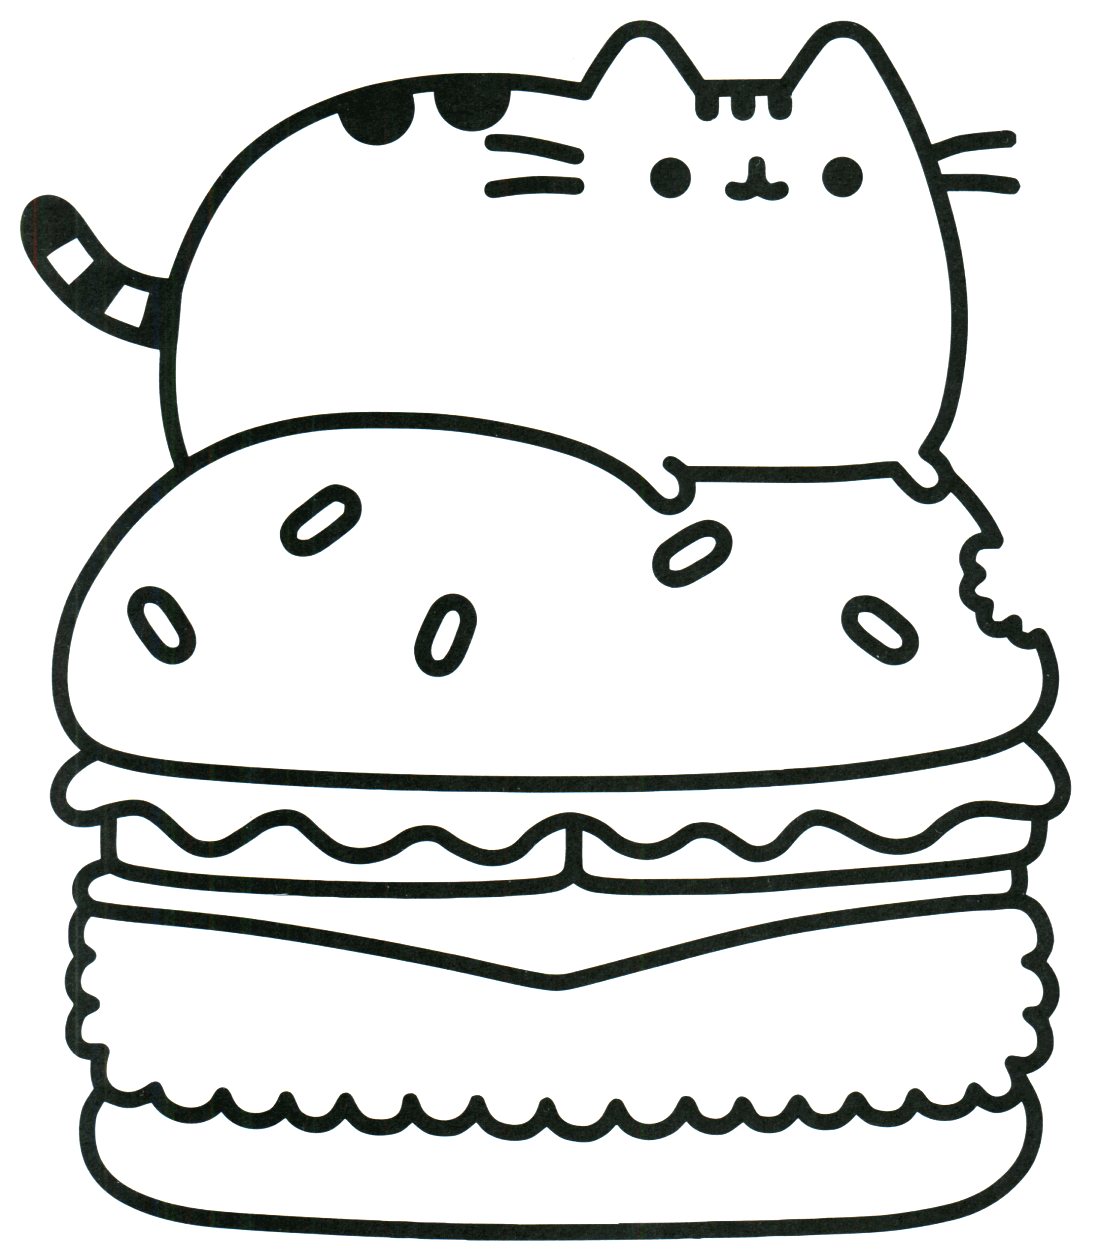 Pusheen Cat Coloring Pages Cat Coloring Book Pusheen Coloring Pages Cat Coloring Page